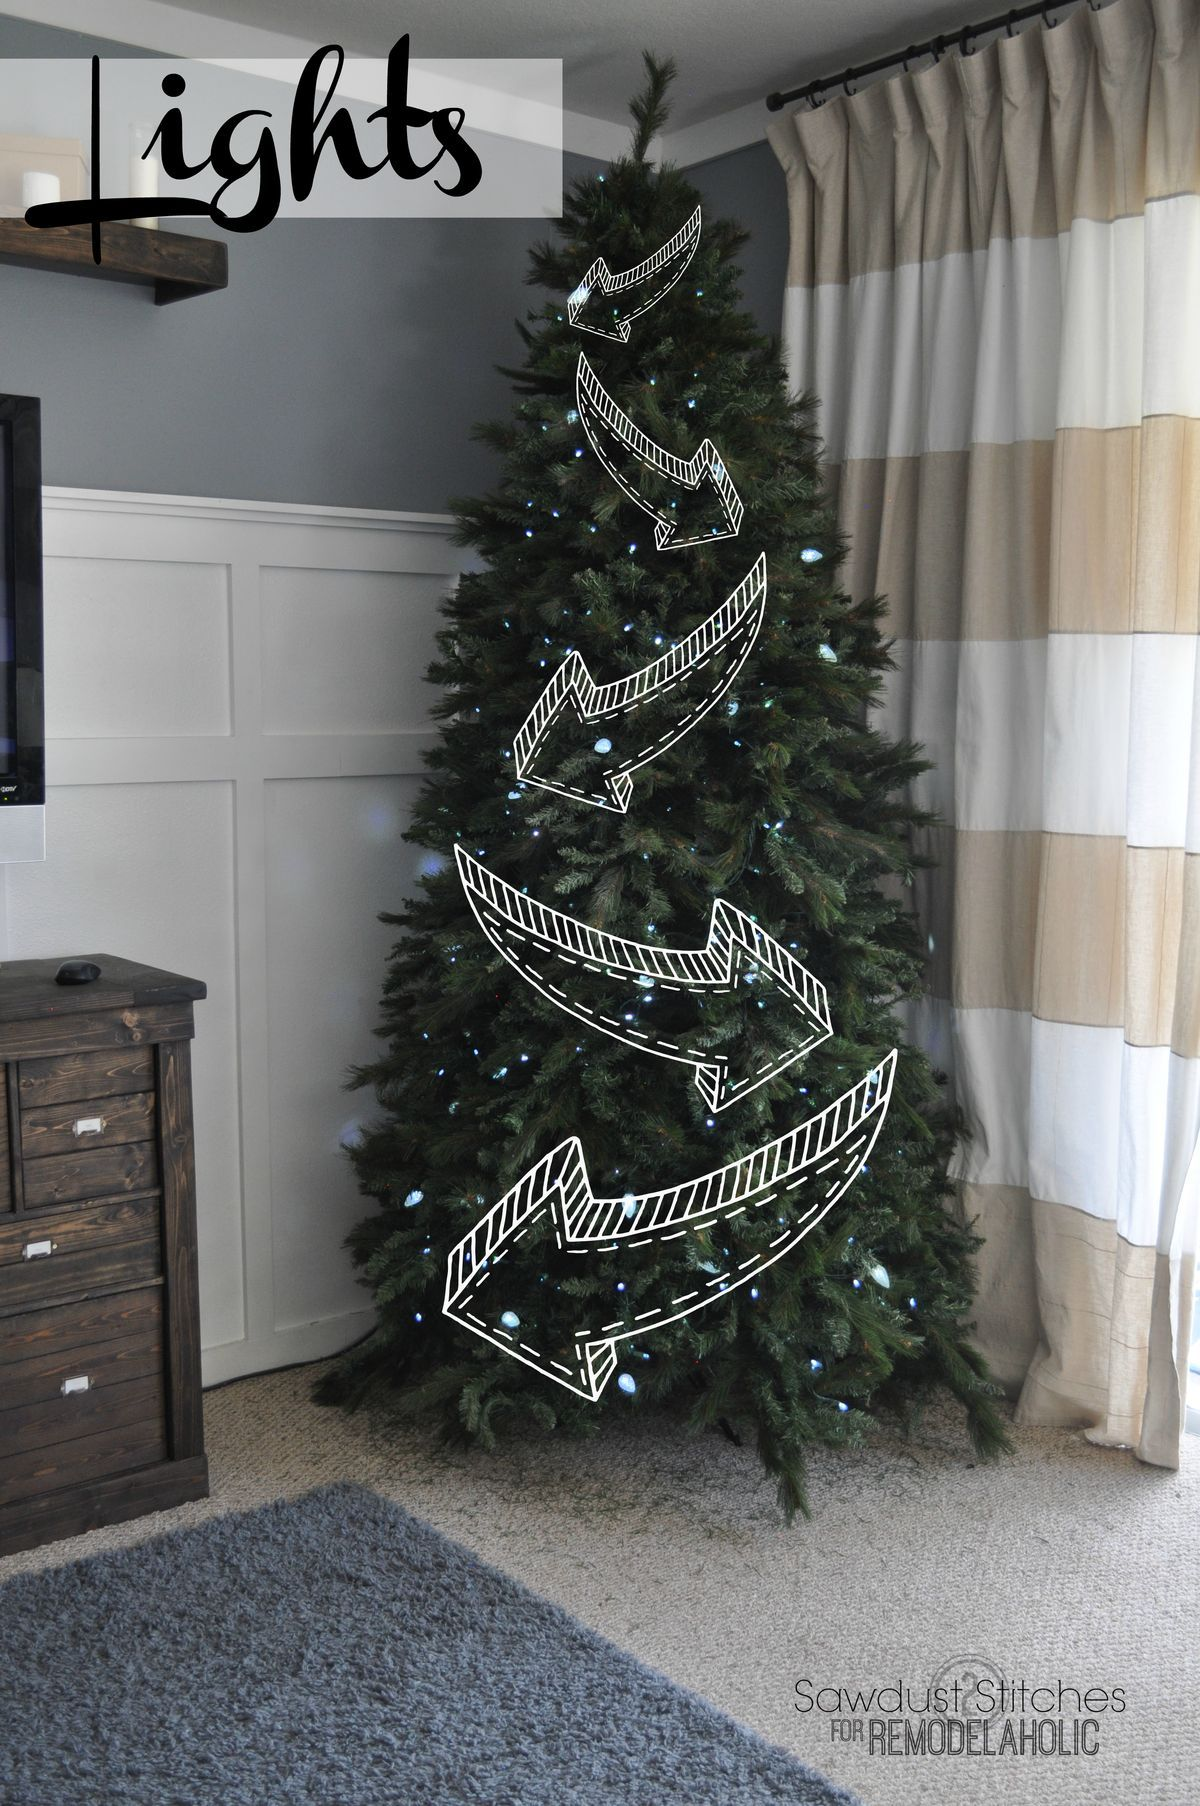 How To Decorate A Christmas Tree Professionally With Ribbon.How To Decorate A Christmas Tree Like A Professional